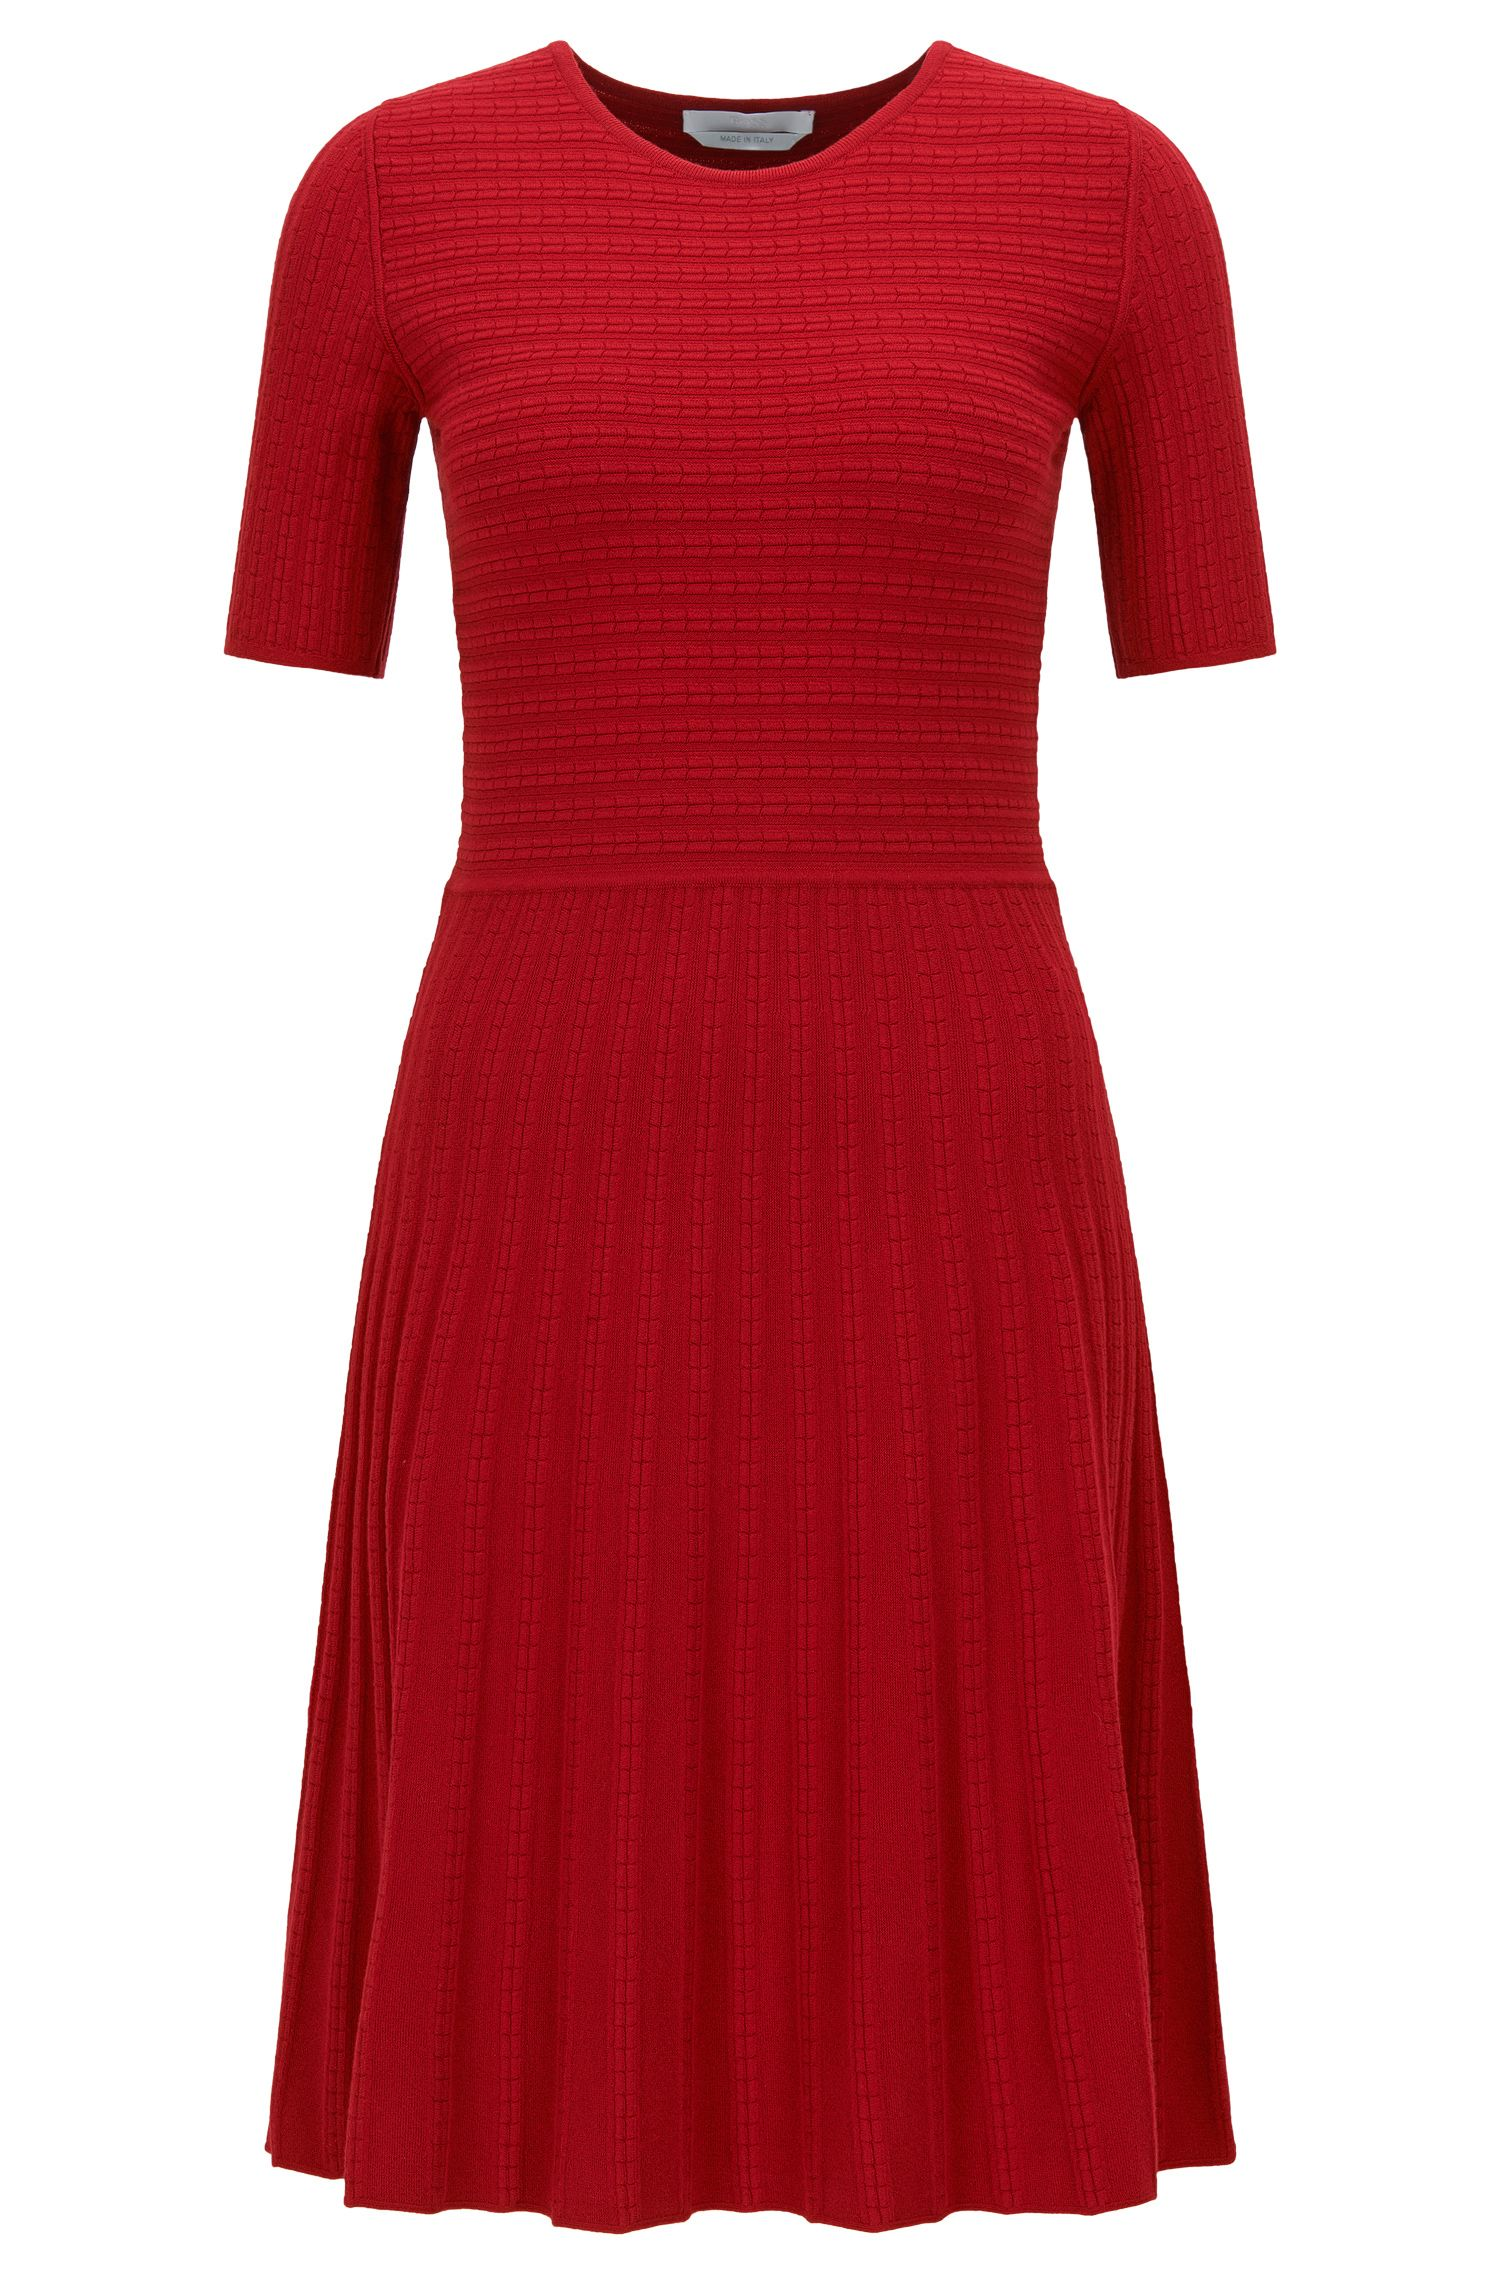 'Frida' | Italian Stretch Dress